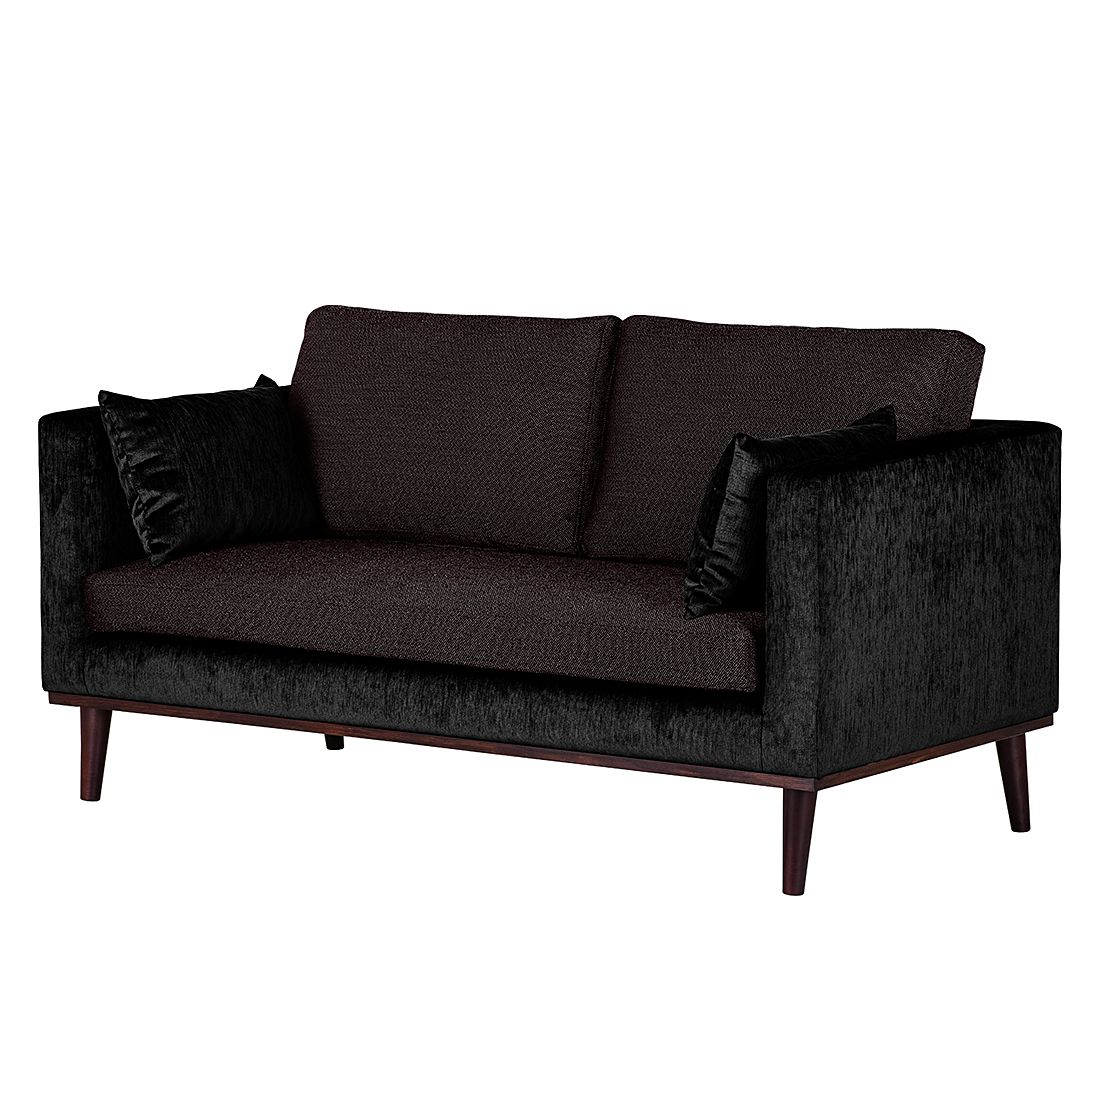 sofa dauphine 2 sitzer webstoff rot samtstoff schwarz maison belfort g nstig kaufen. Black Bedroom Furniture Sets. Home Design Ideas